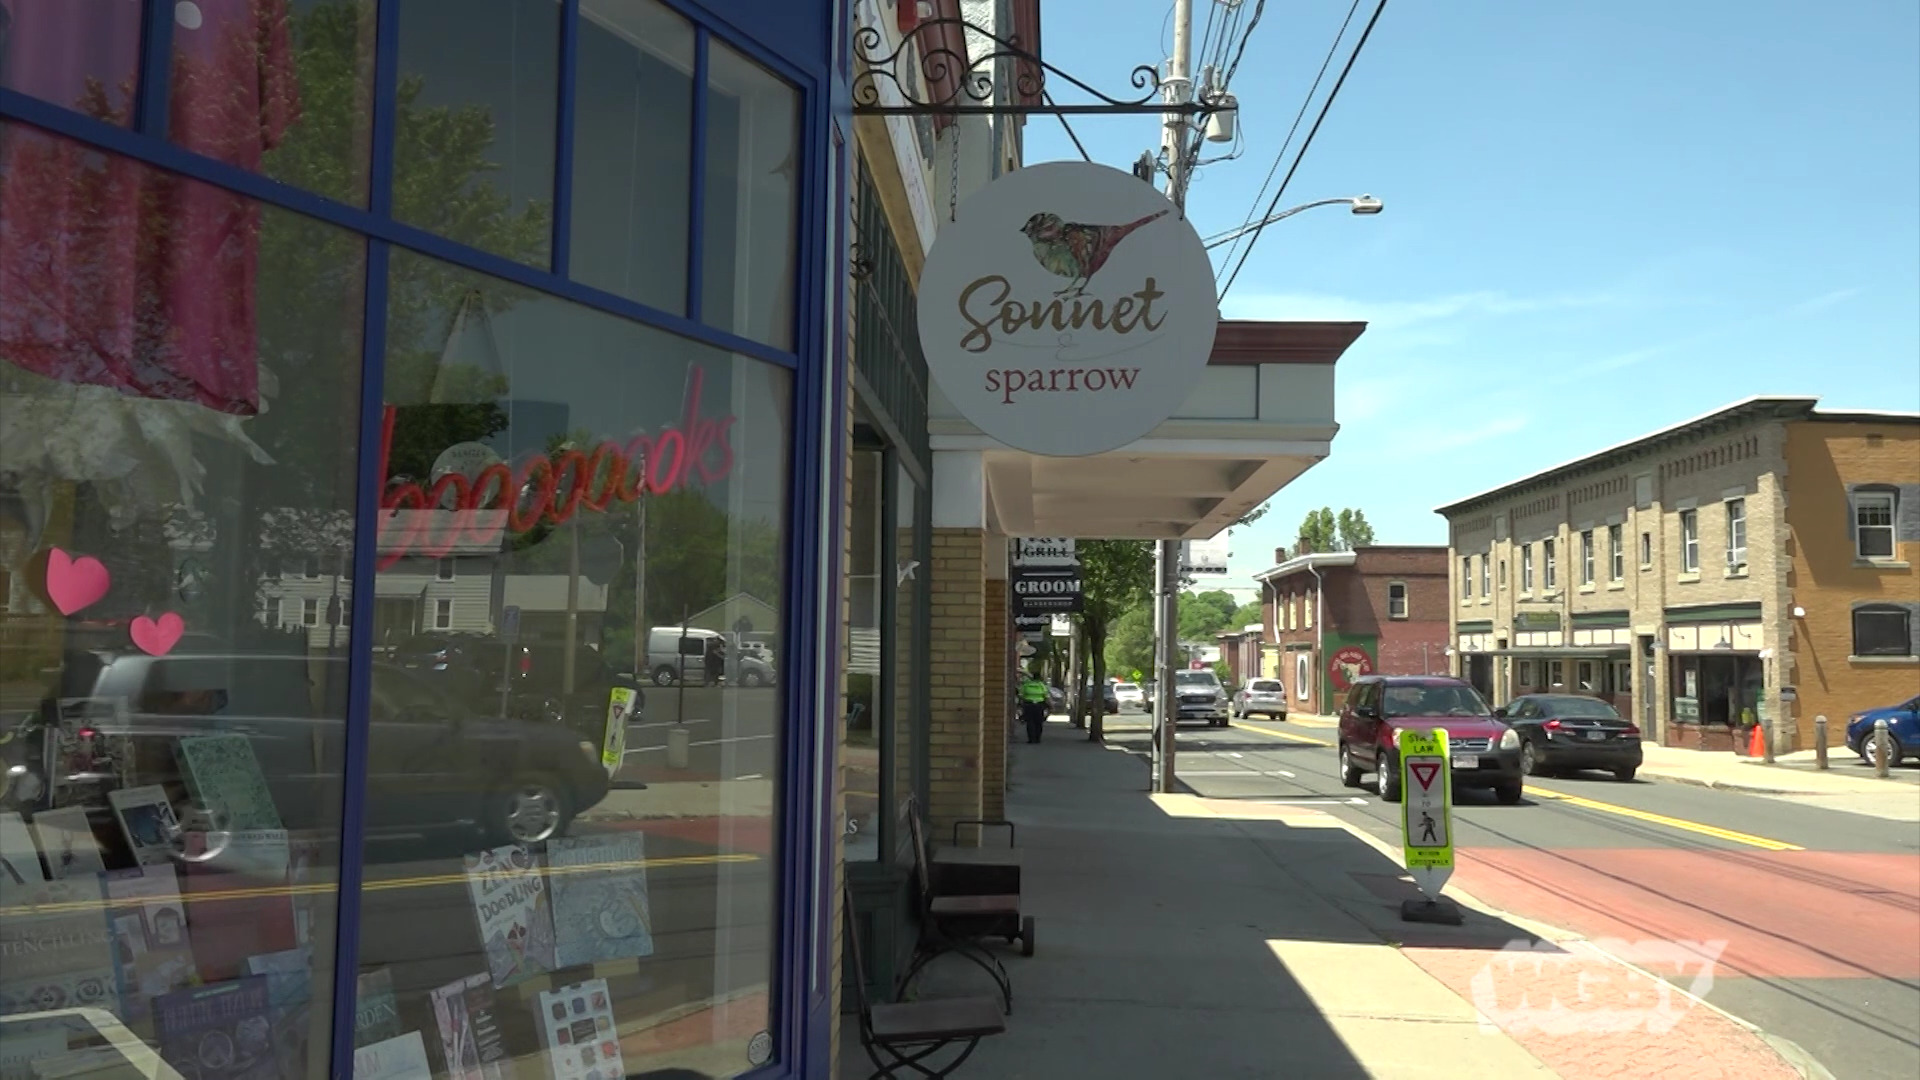 WATCH: Visit downtown Easthampton to learn how the city's cultural district is planning to reopen after shutting down for two months to combat COVID-19.